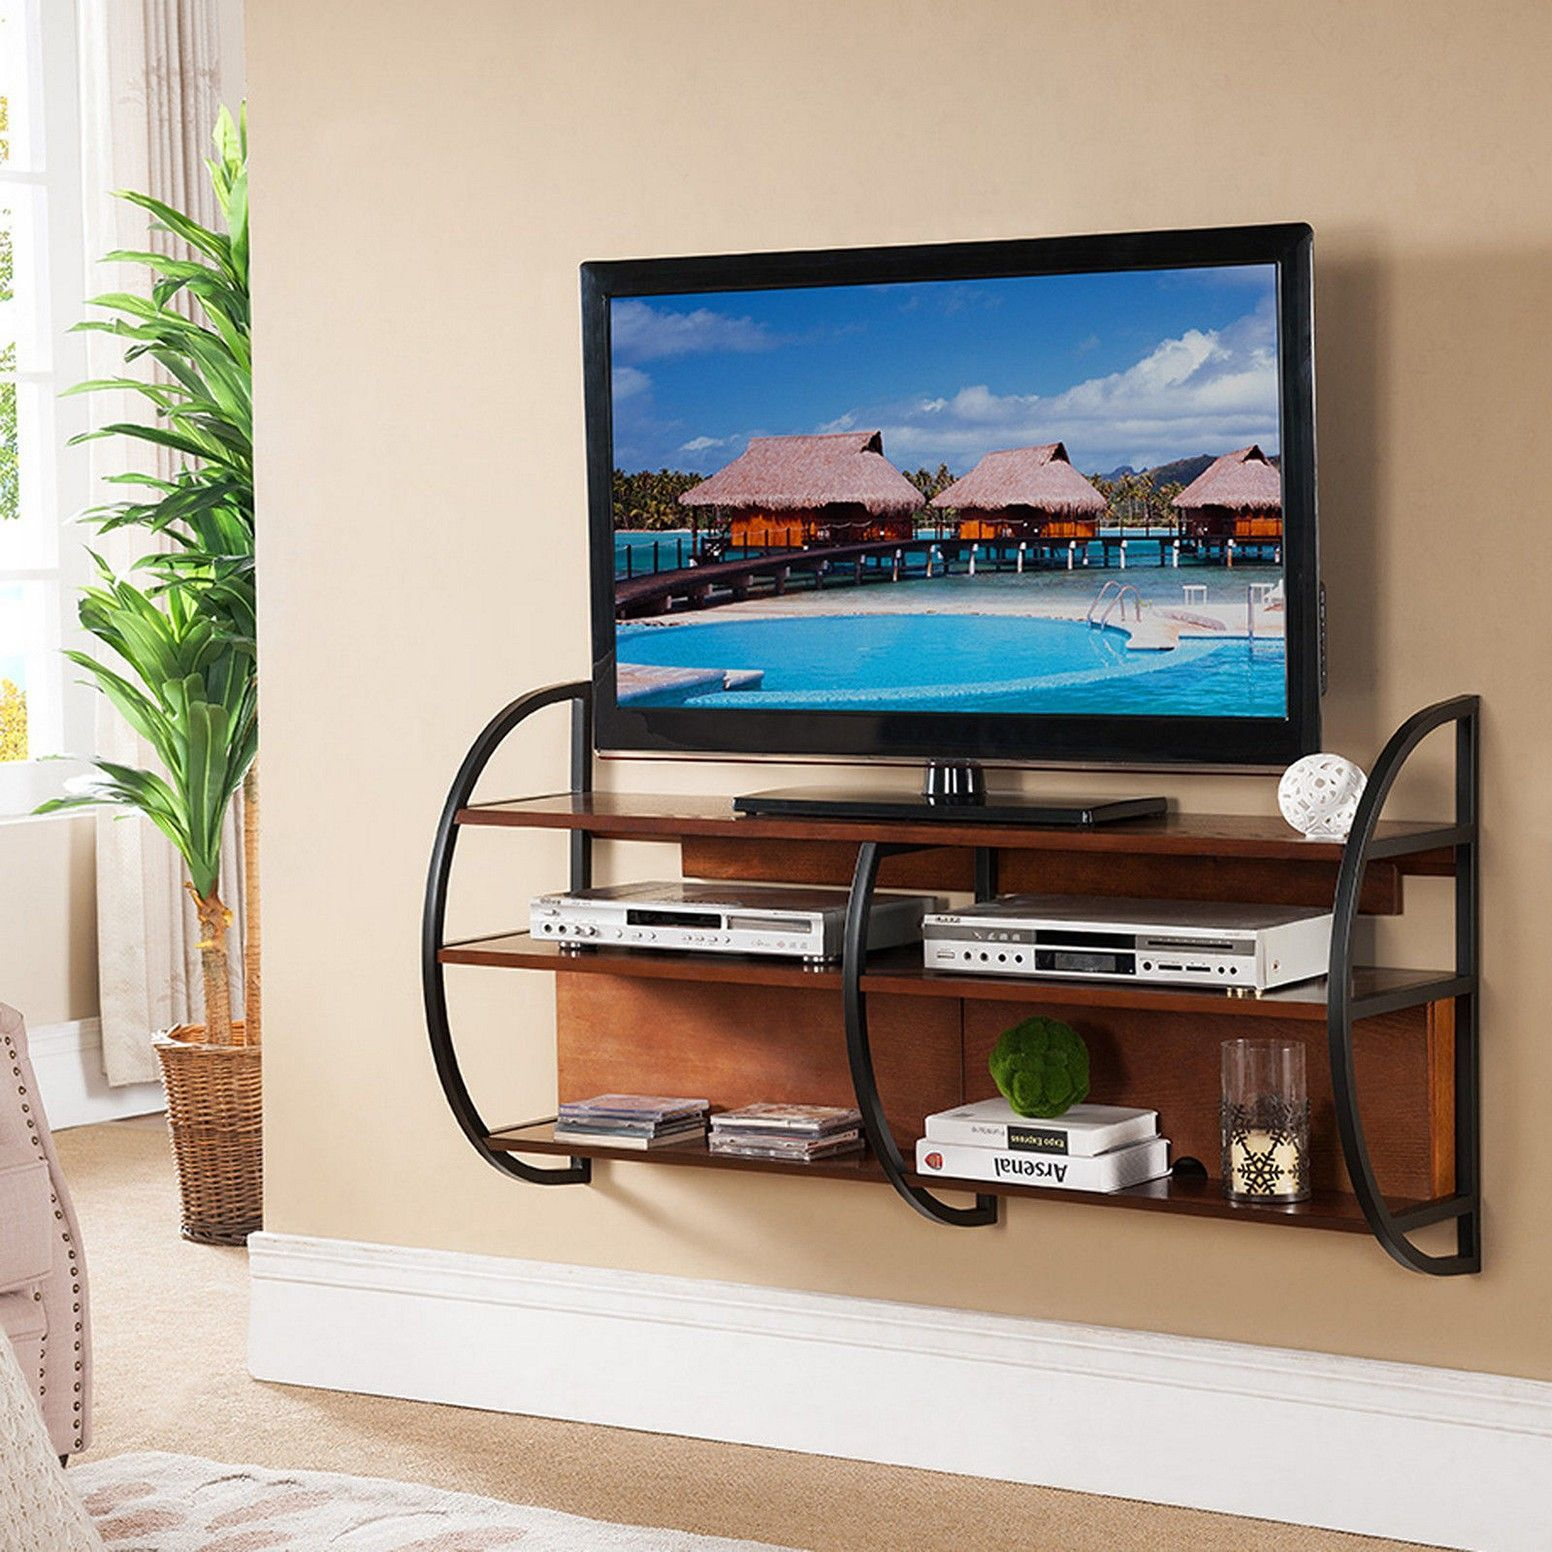 Floating Tv Stand South Africa Designfloatingtvstand Wall Mount